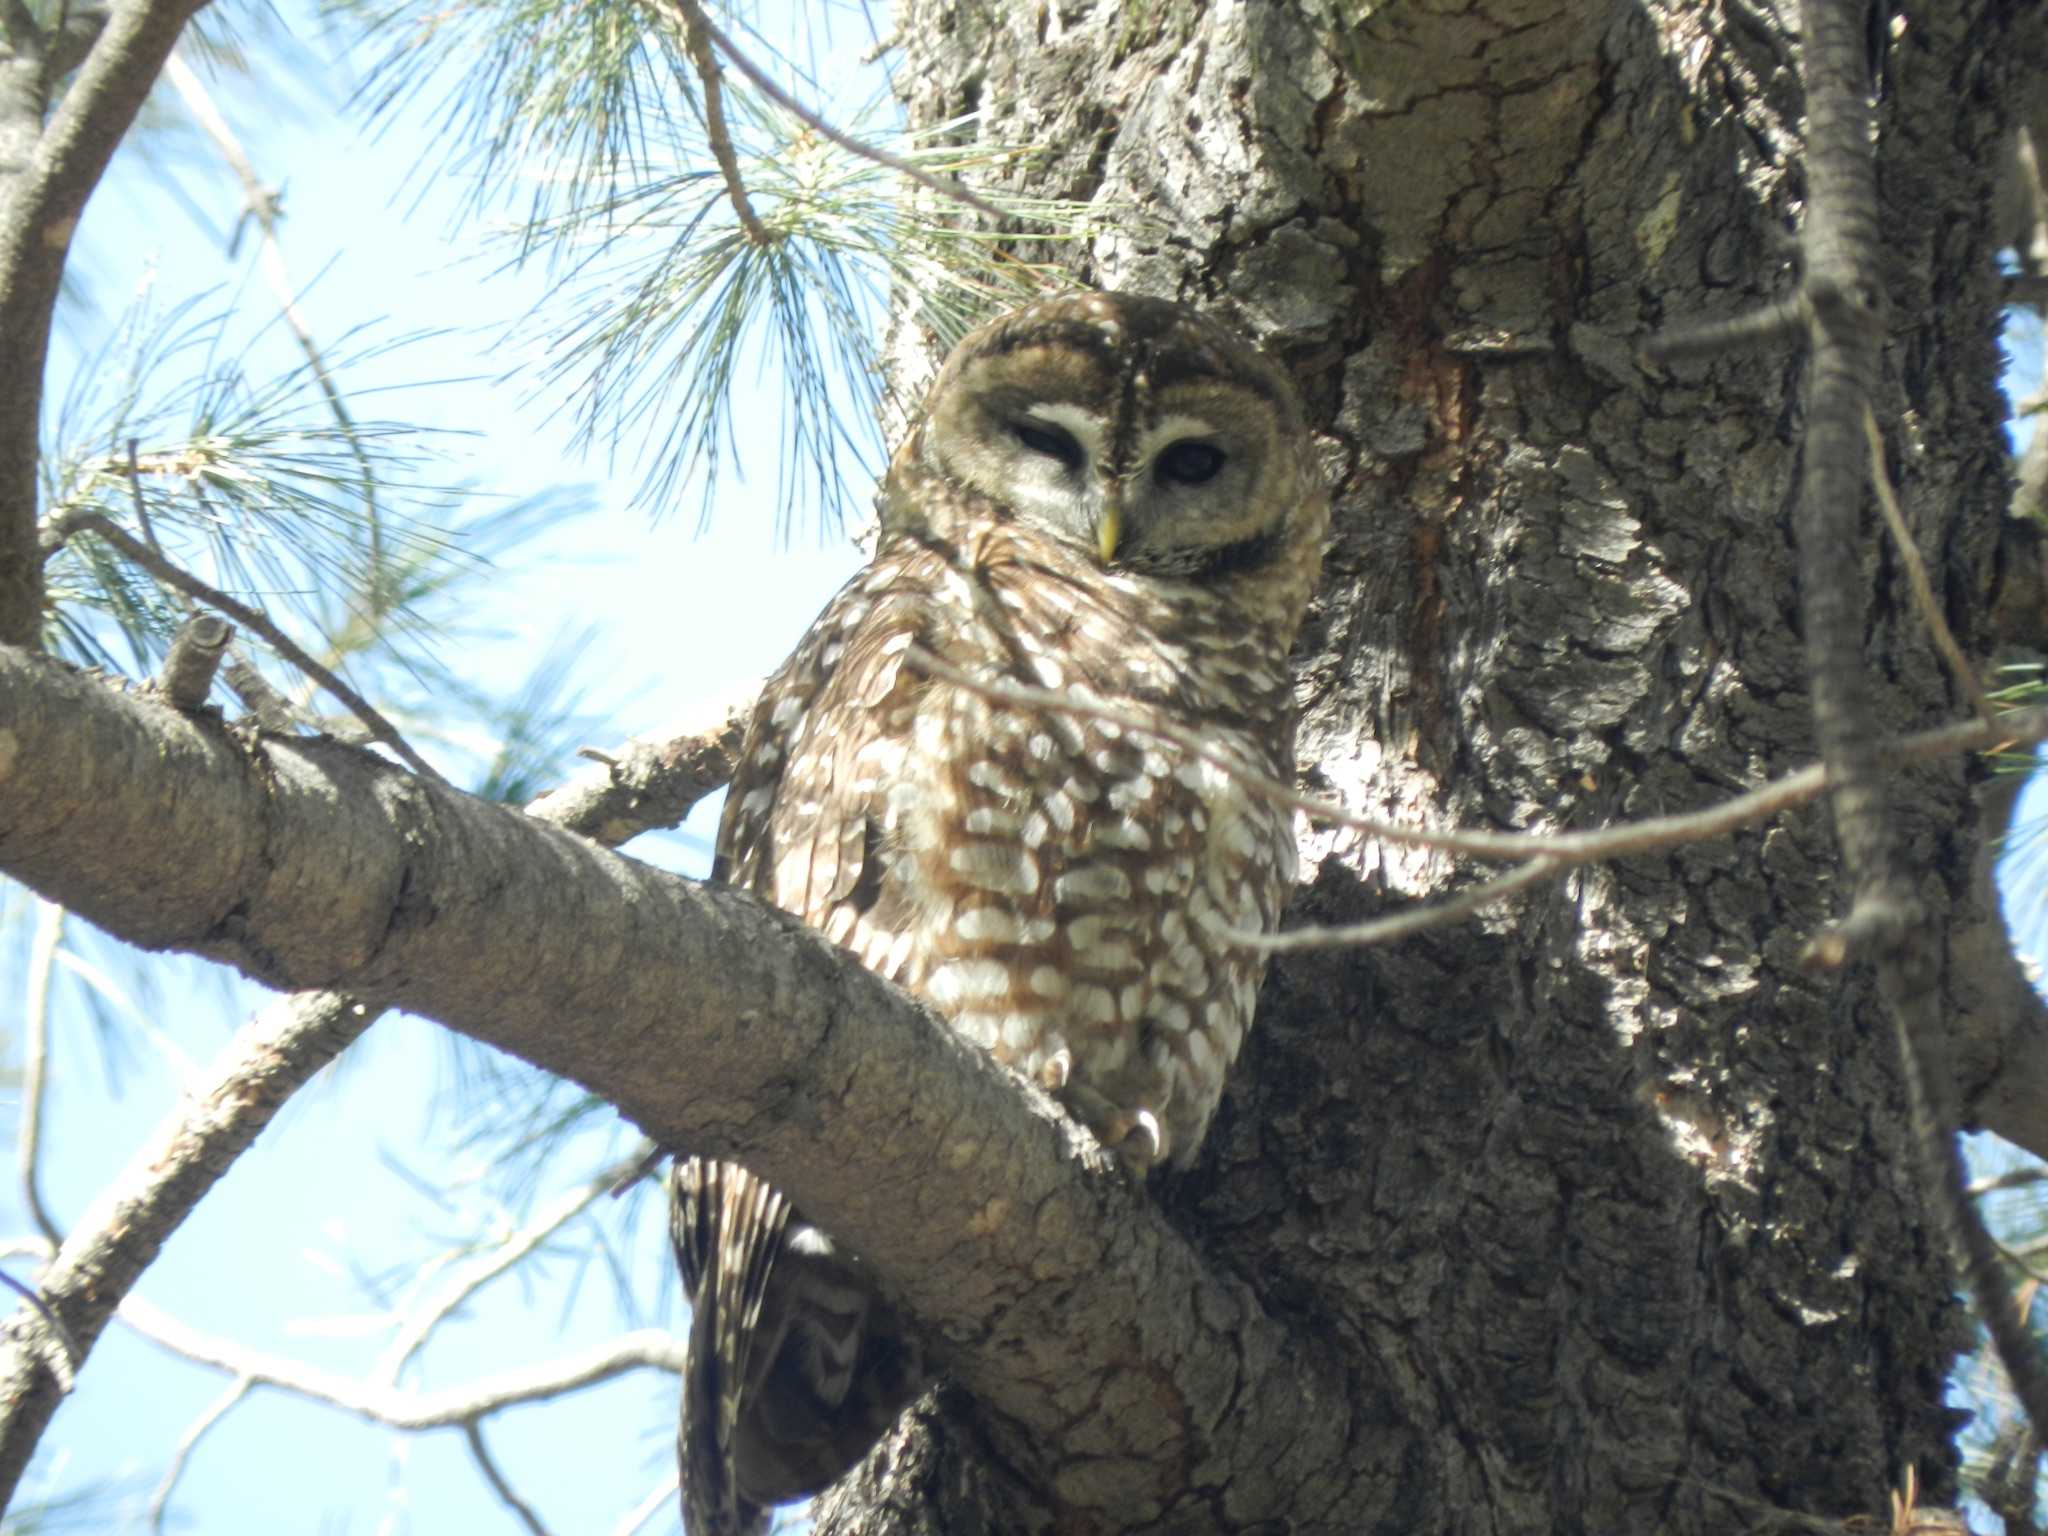 De-extinction could potentially interfere with conservation efforts for the spotted owl.